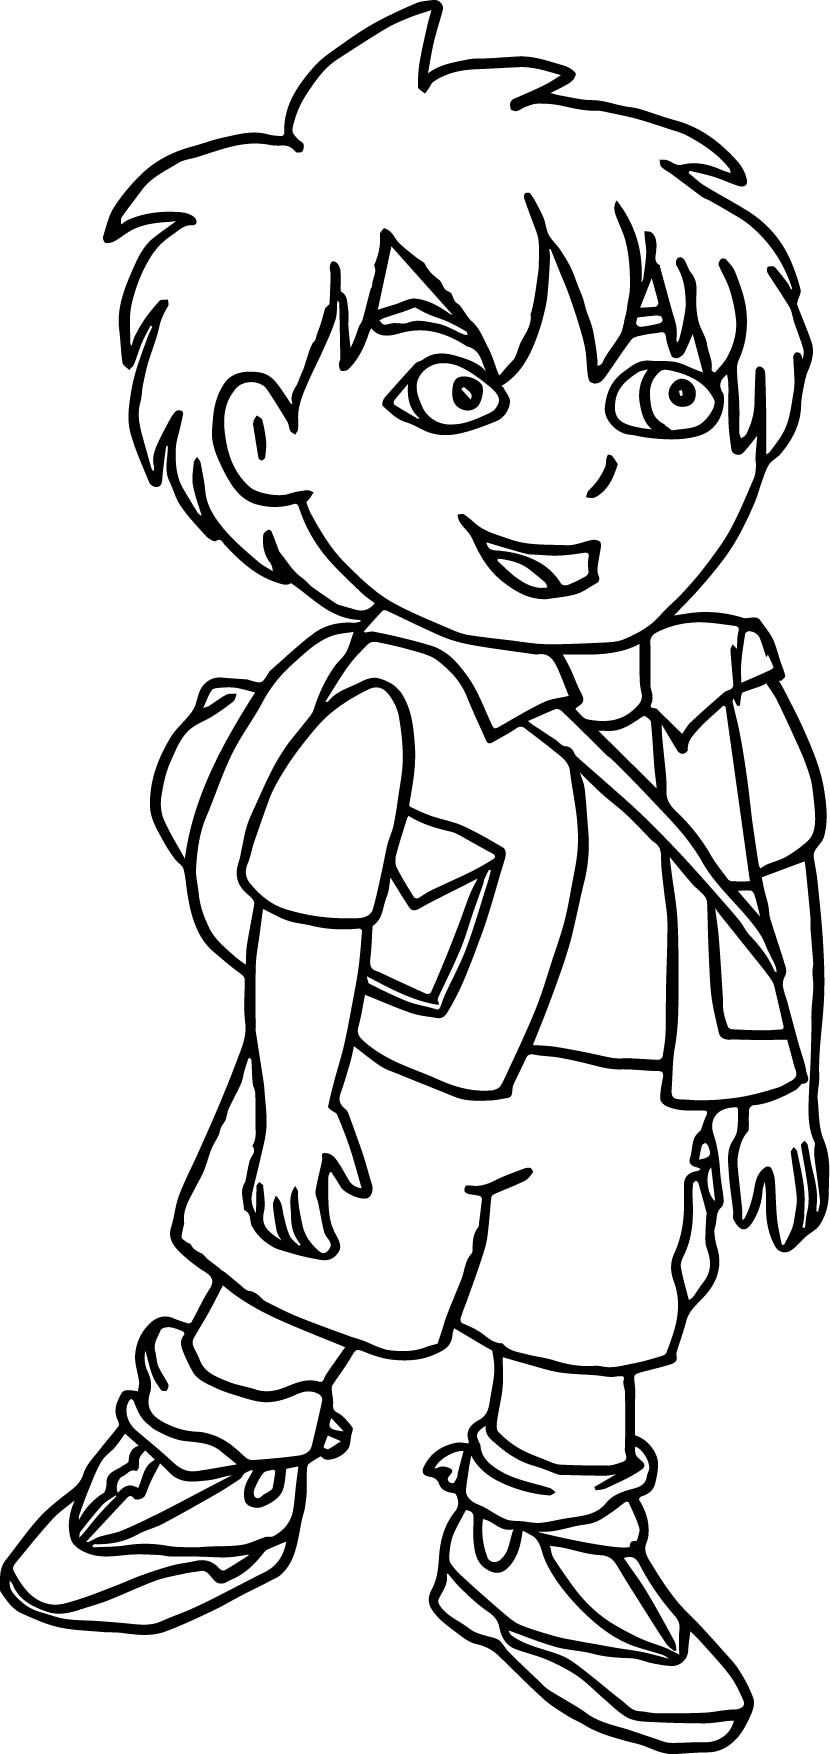 Good Go Diego Go Coloring Page | Wecoloringpage.com